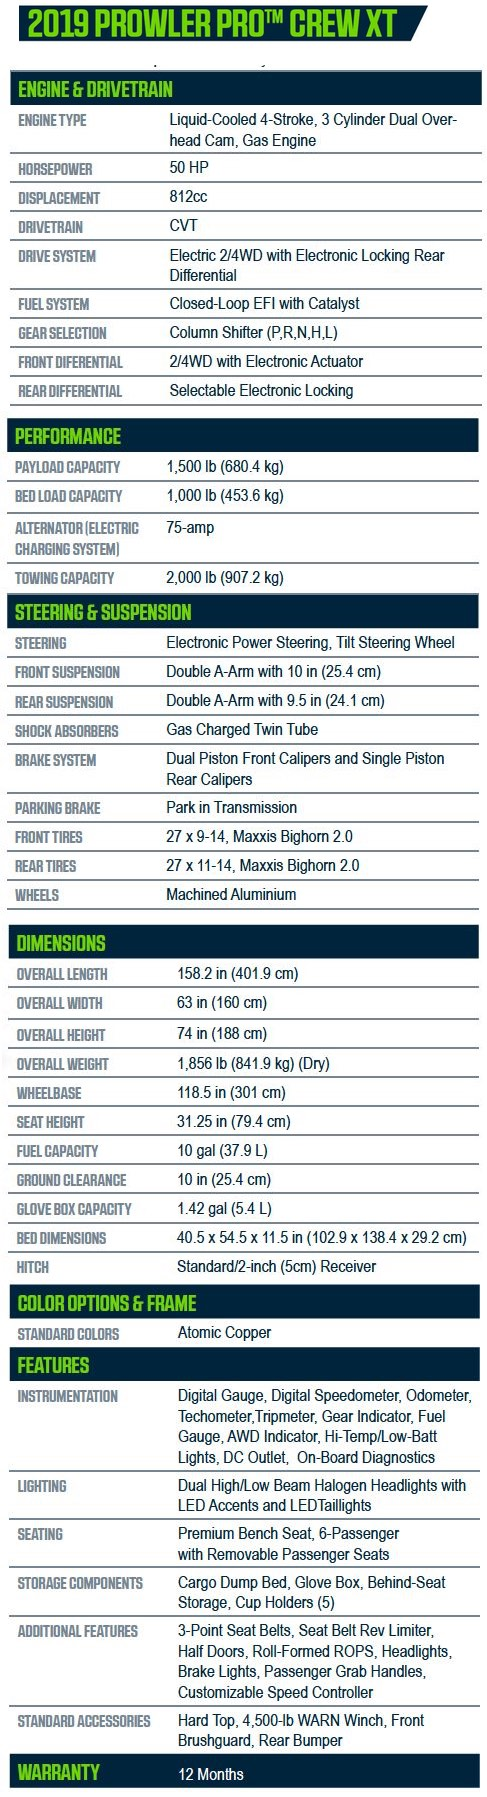 2019 Prowler Pro Crew XT Specifications